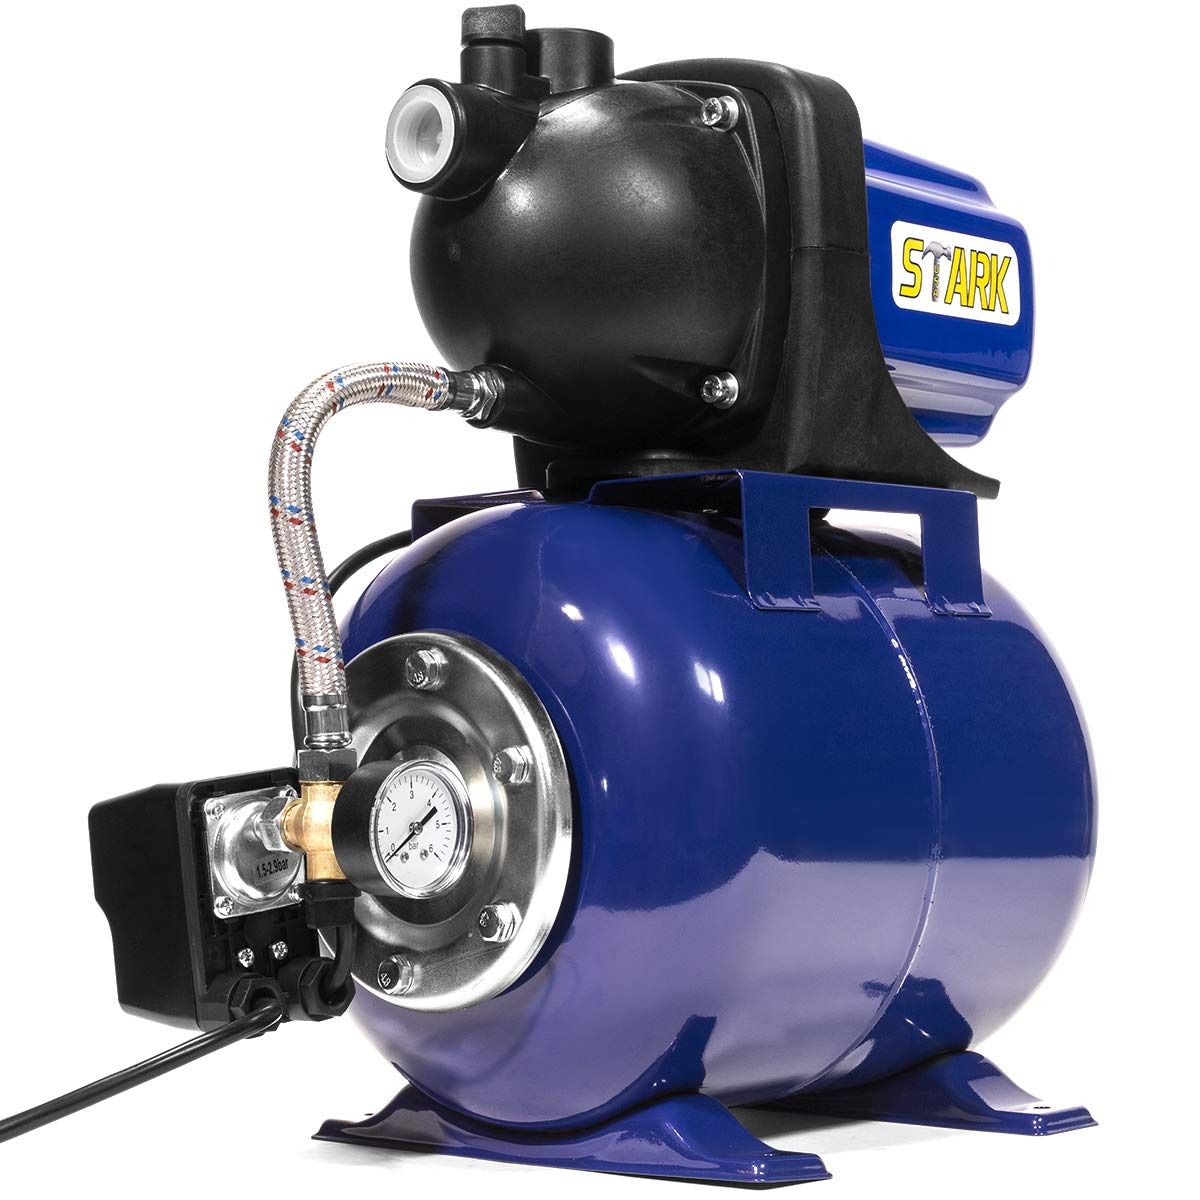 XtremepowerUS 1.6 HP Shallow Jet Water Well Pump with Tank Garden Sprinkler System, Blue by XtremepowerUS